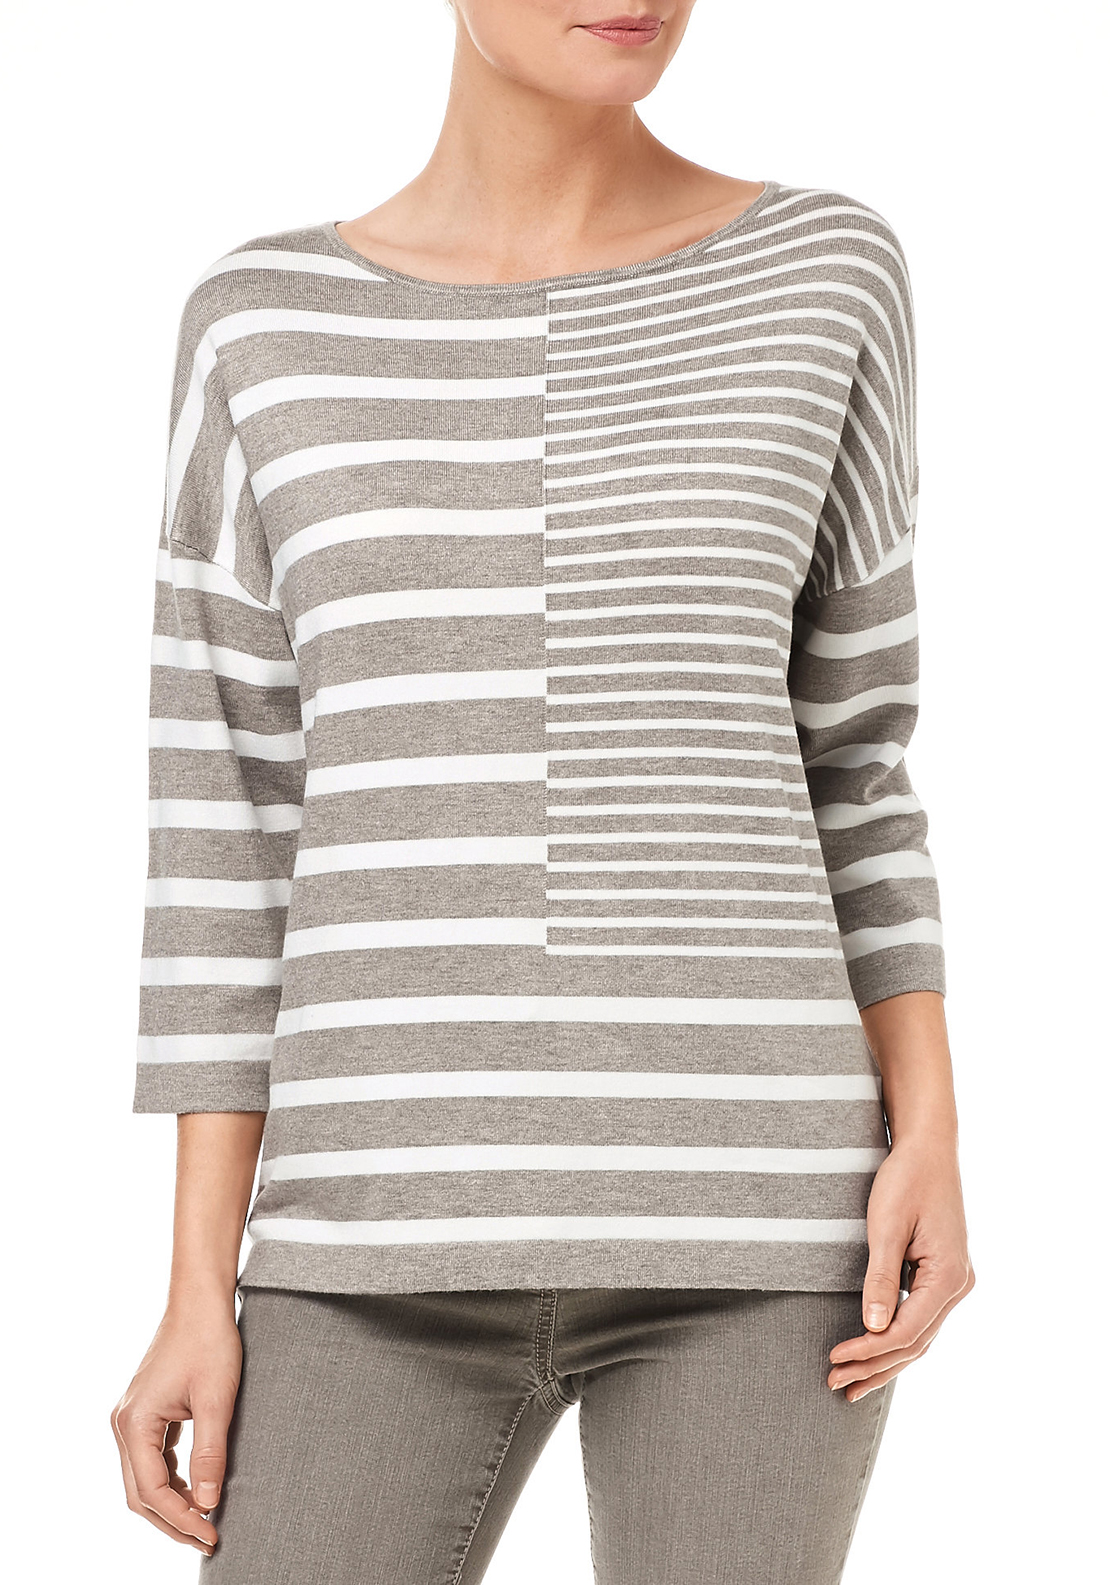 Gerry Weber Loose Fitting Knitwear Jumper with Panelled Stripes, Brown and White